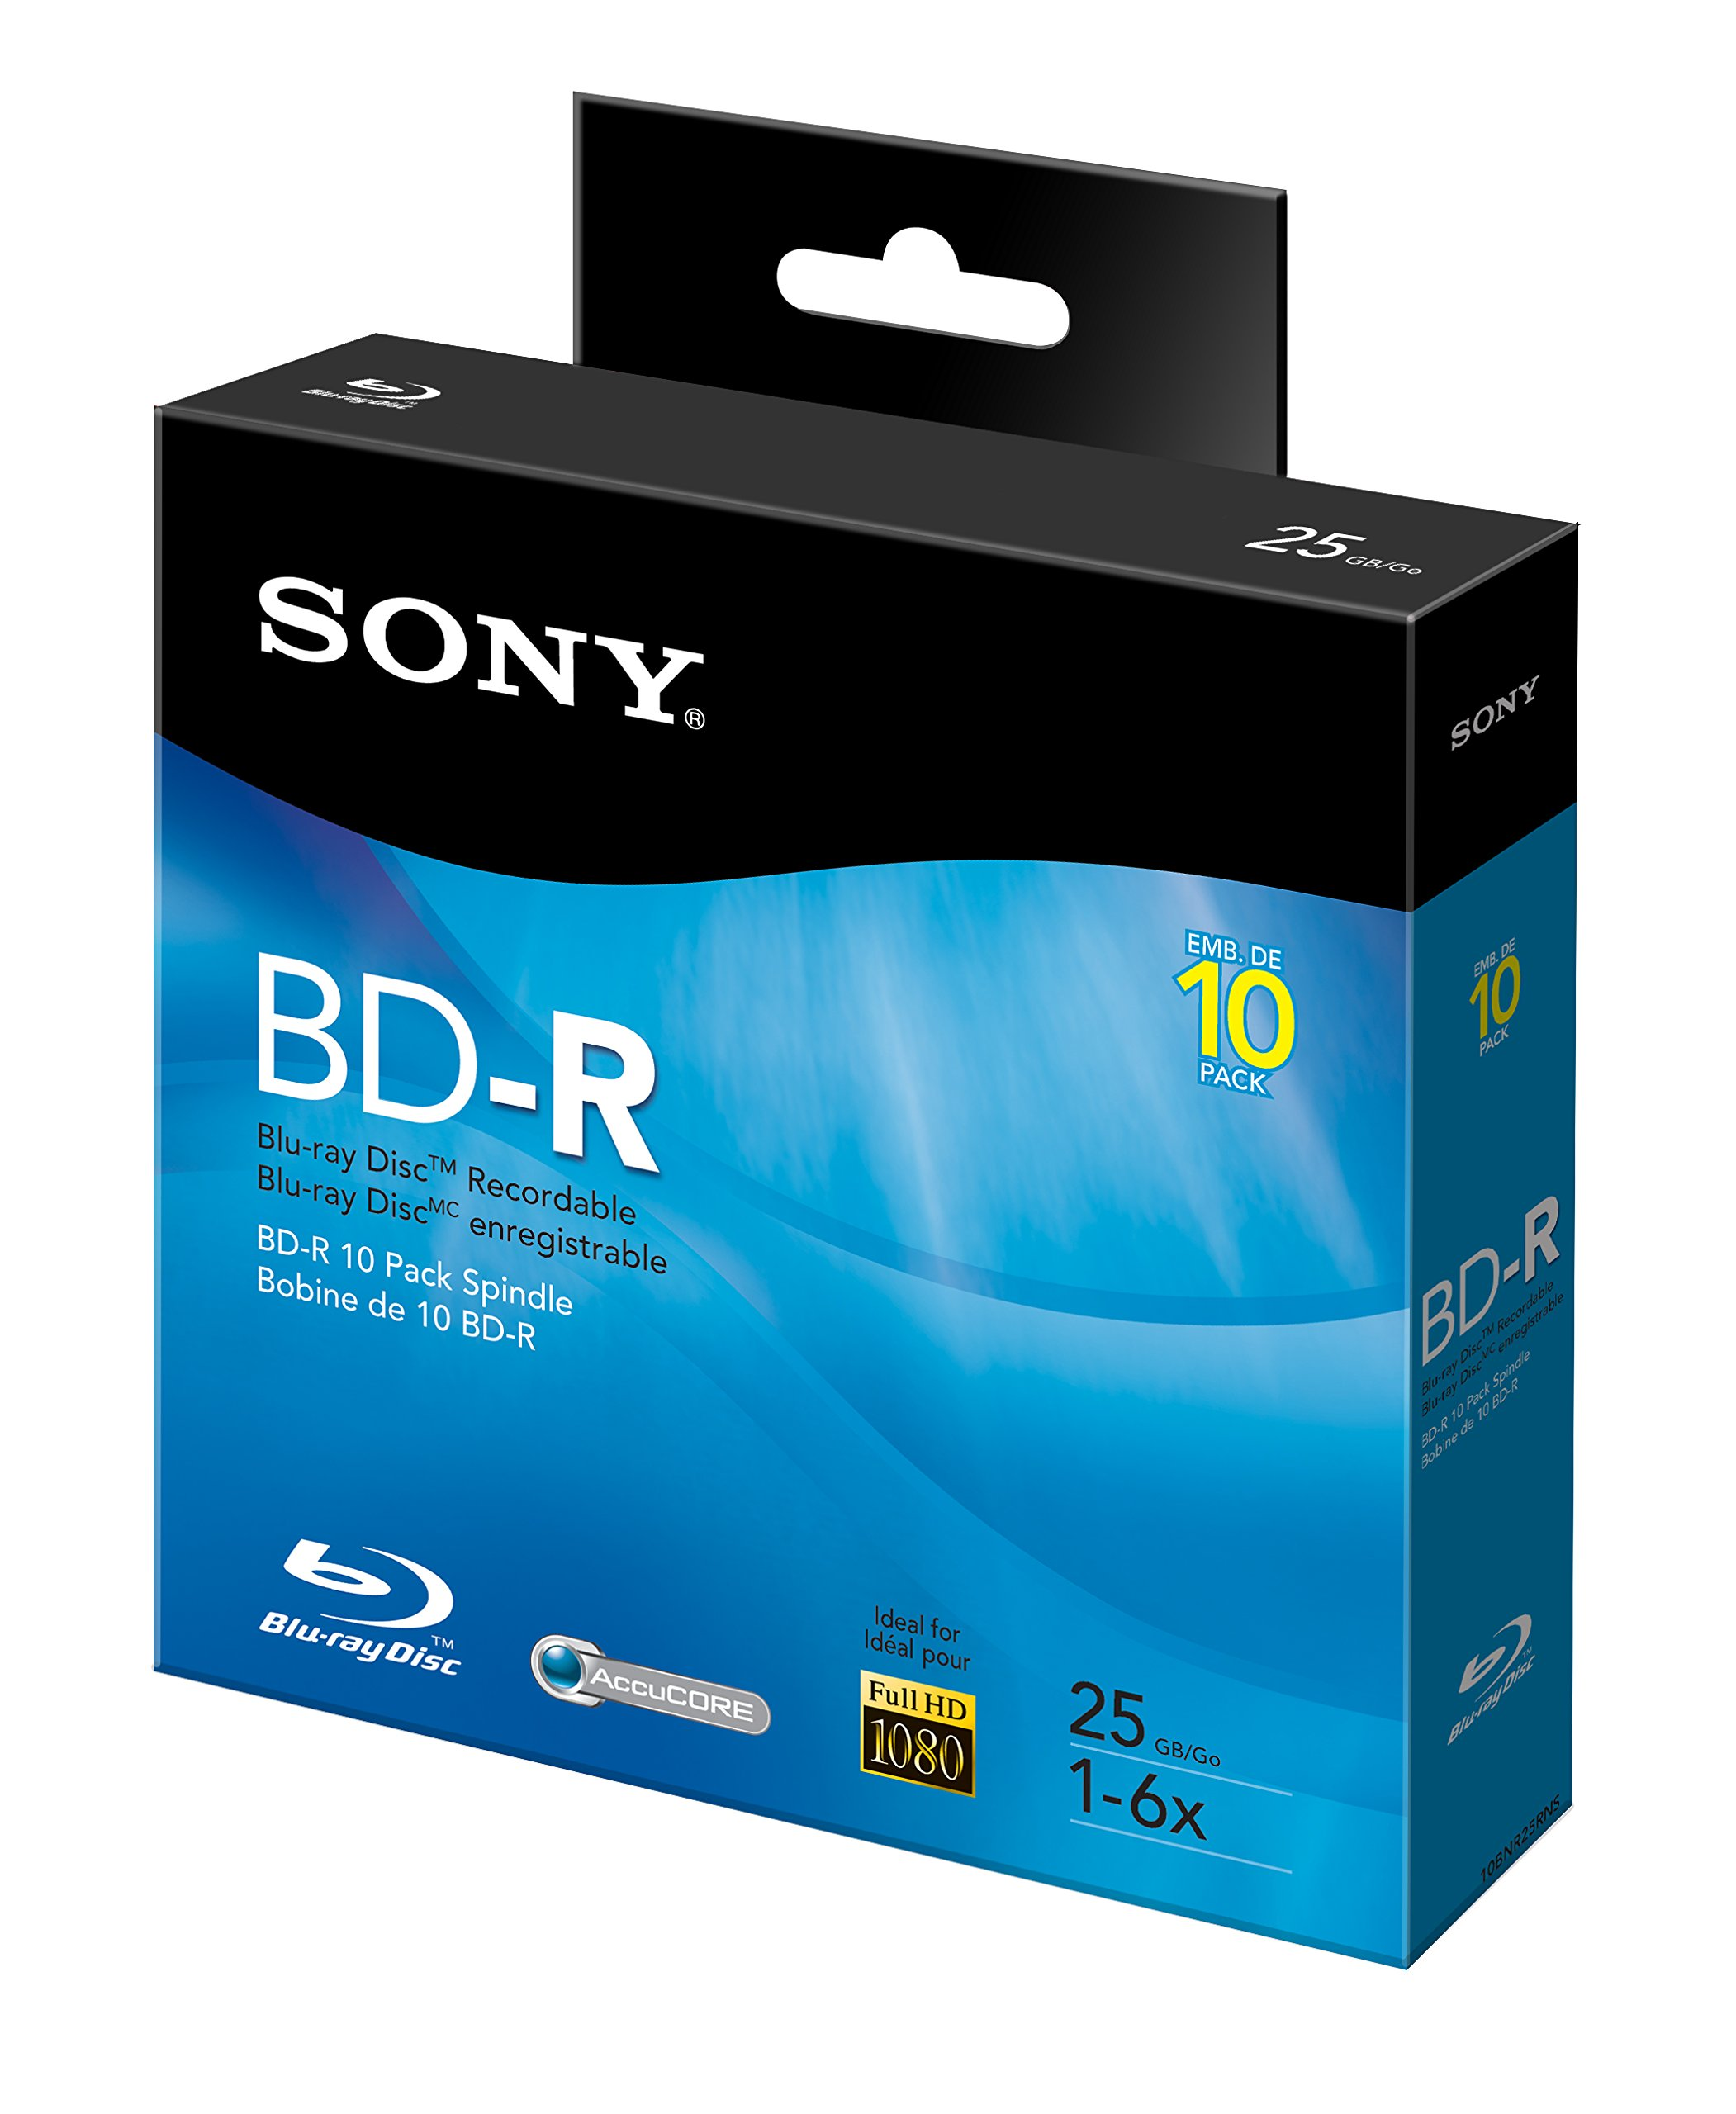 Sony 10BNR25RNS 6x 25GB Recordable Blu-Ray Disc - 10 Pack Spindle by Sony